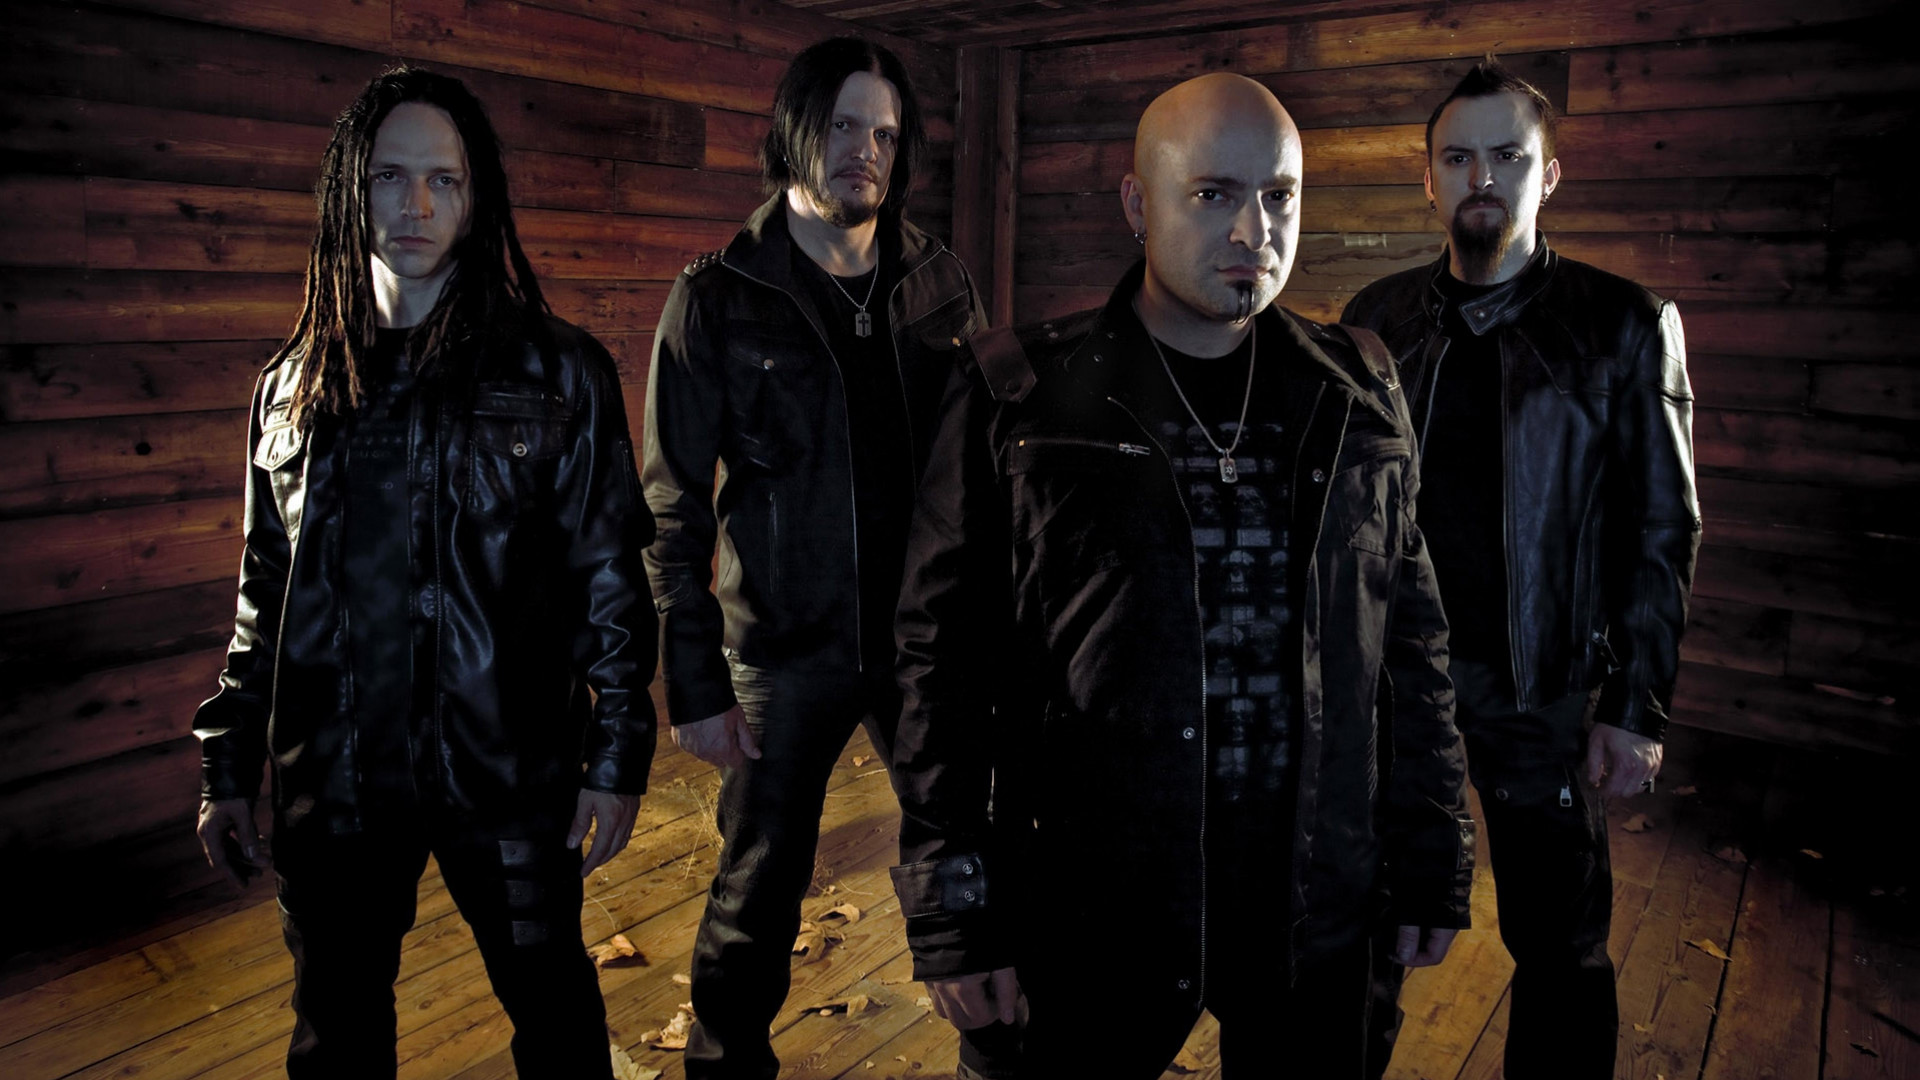 Res: 1920x1080, Image for Disturbed Have Broken Their Hiatus, And New Music Is Imminent